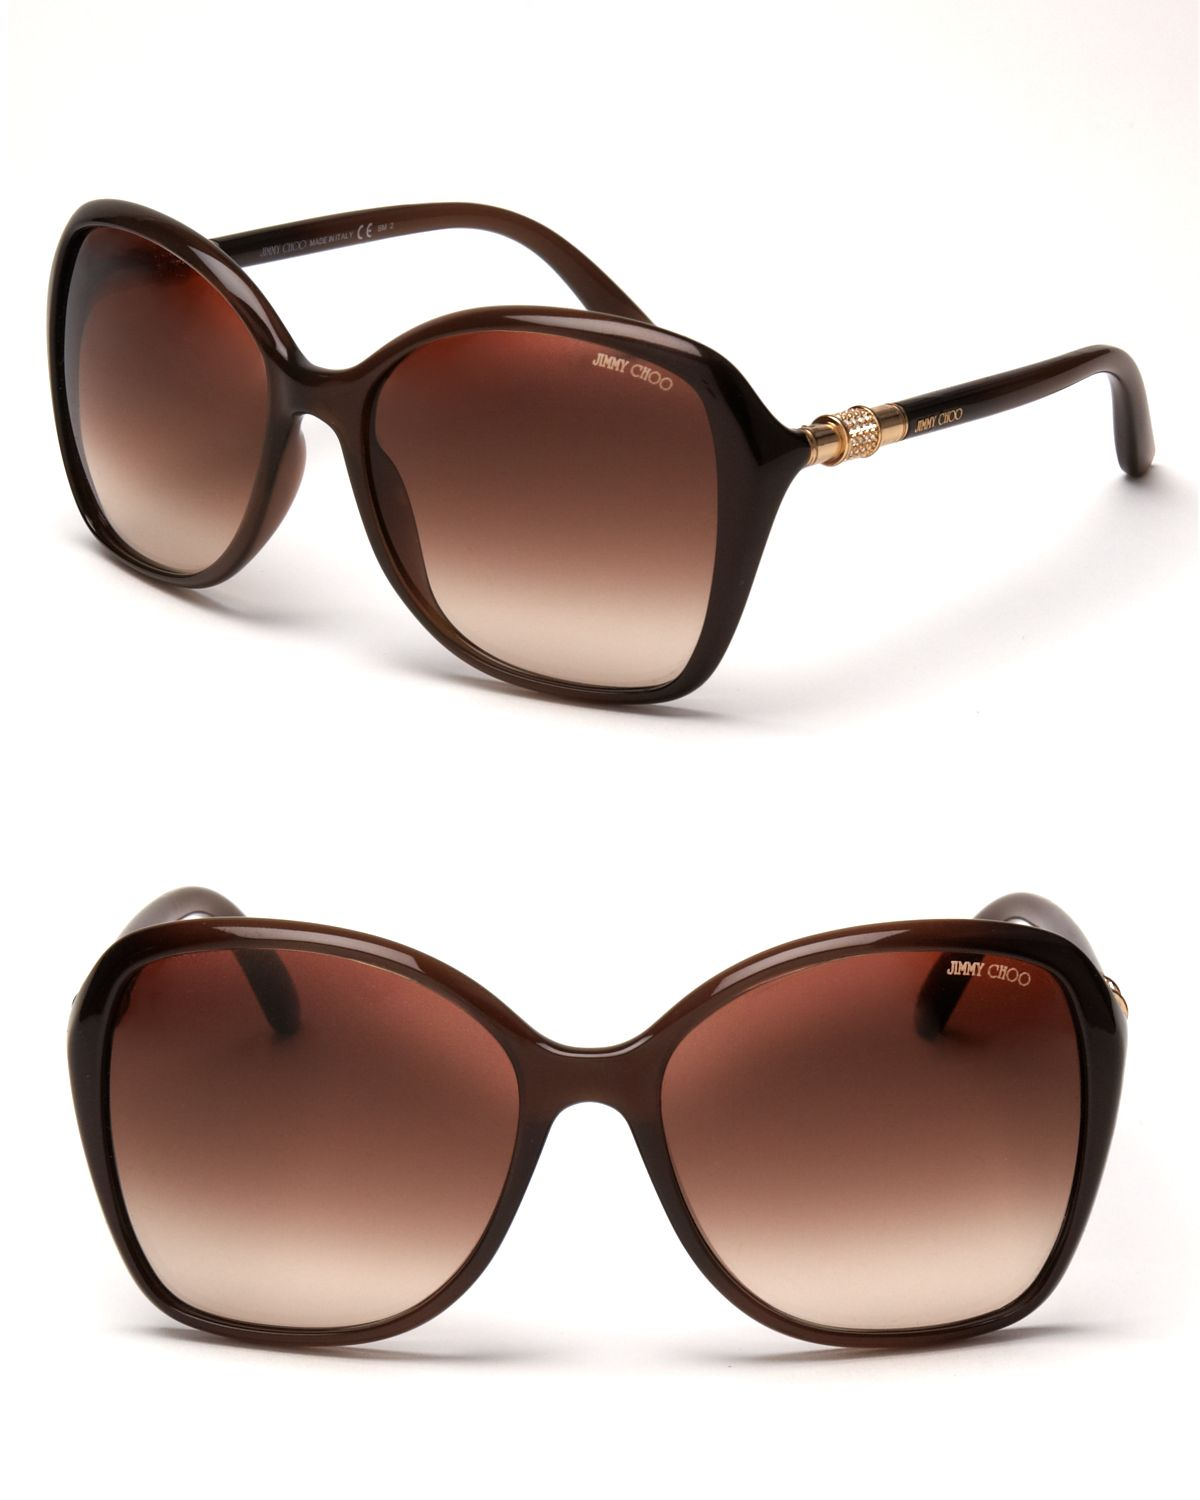 383fd9d05c39 Jimmy Choo Oversized Crystal Temple Sunglasses in Brown - Lyst